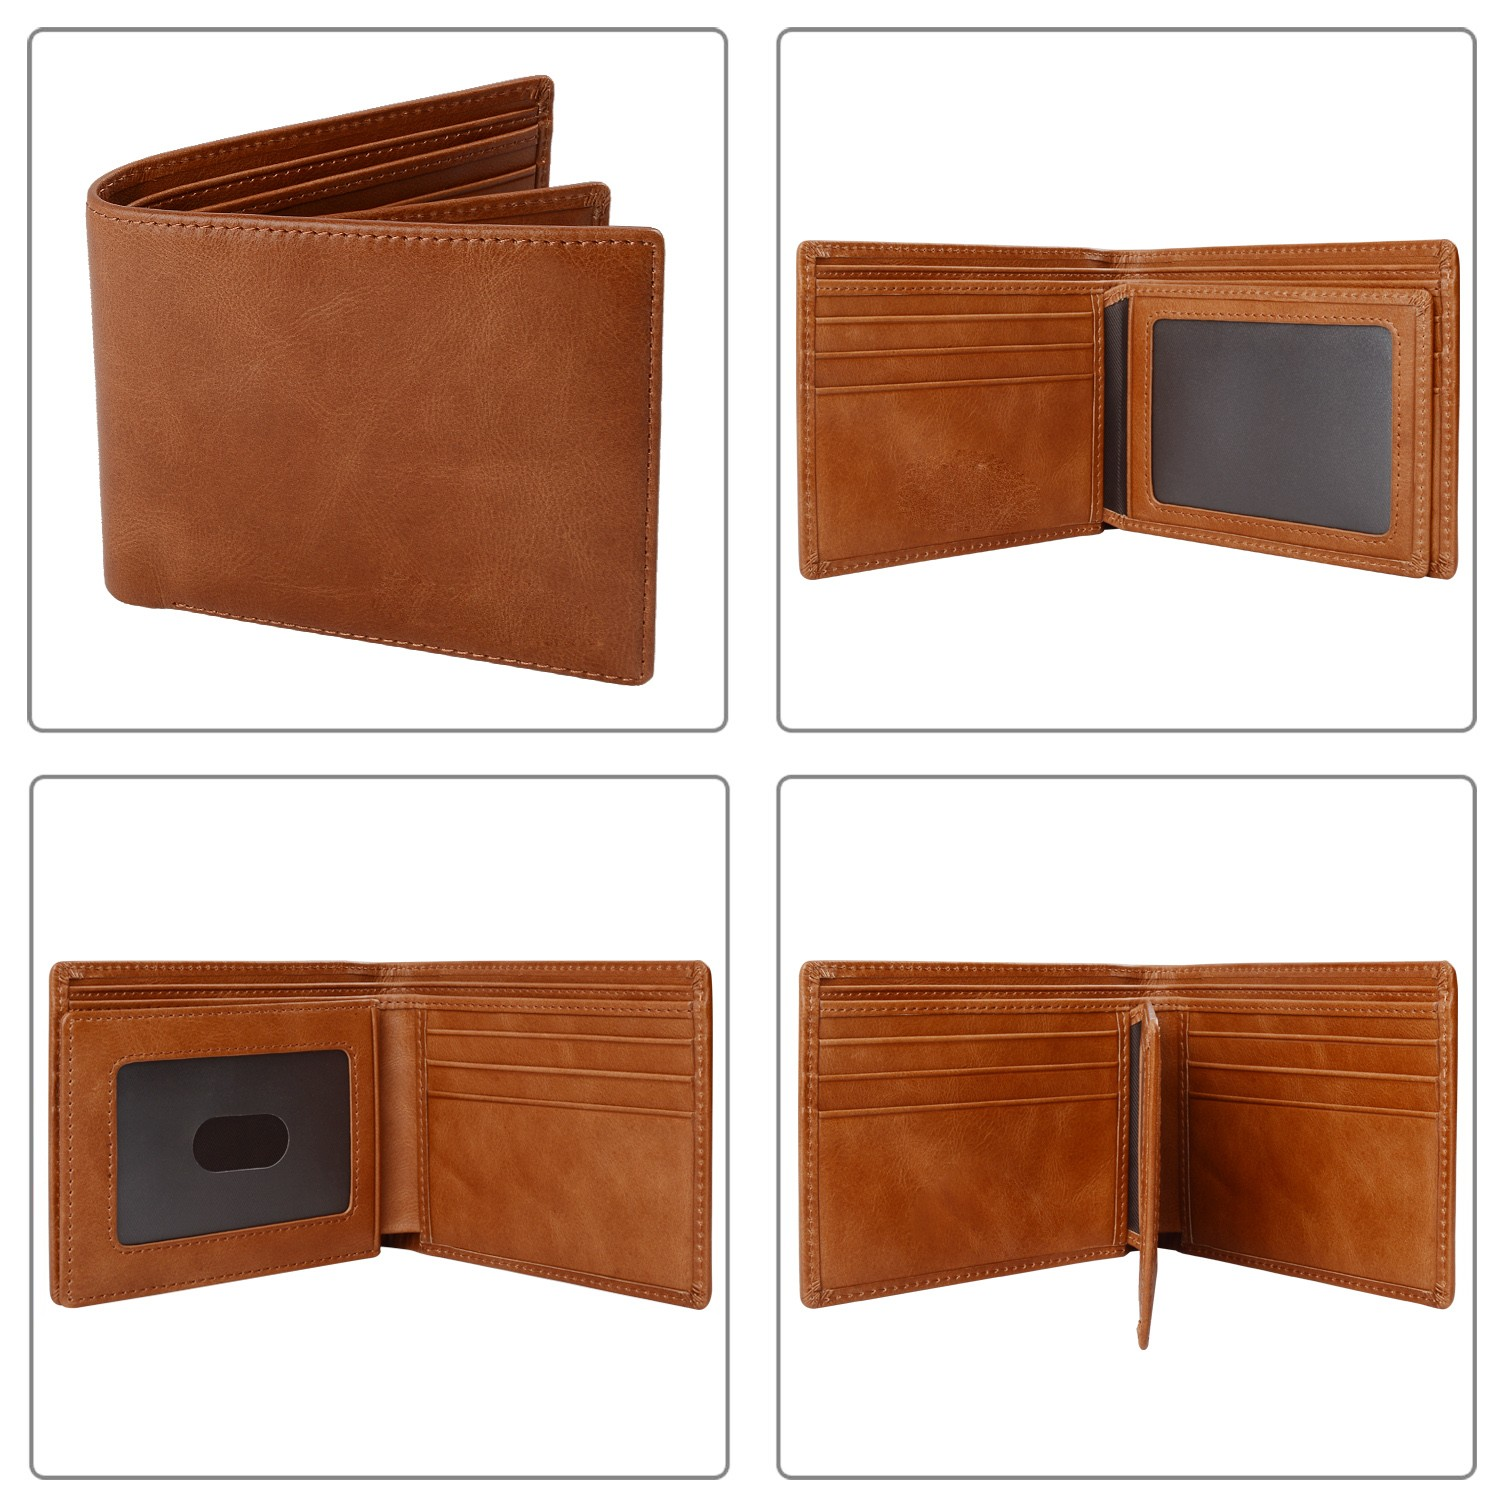 leather travel wallet large capacity for men-4